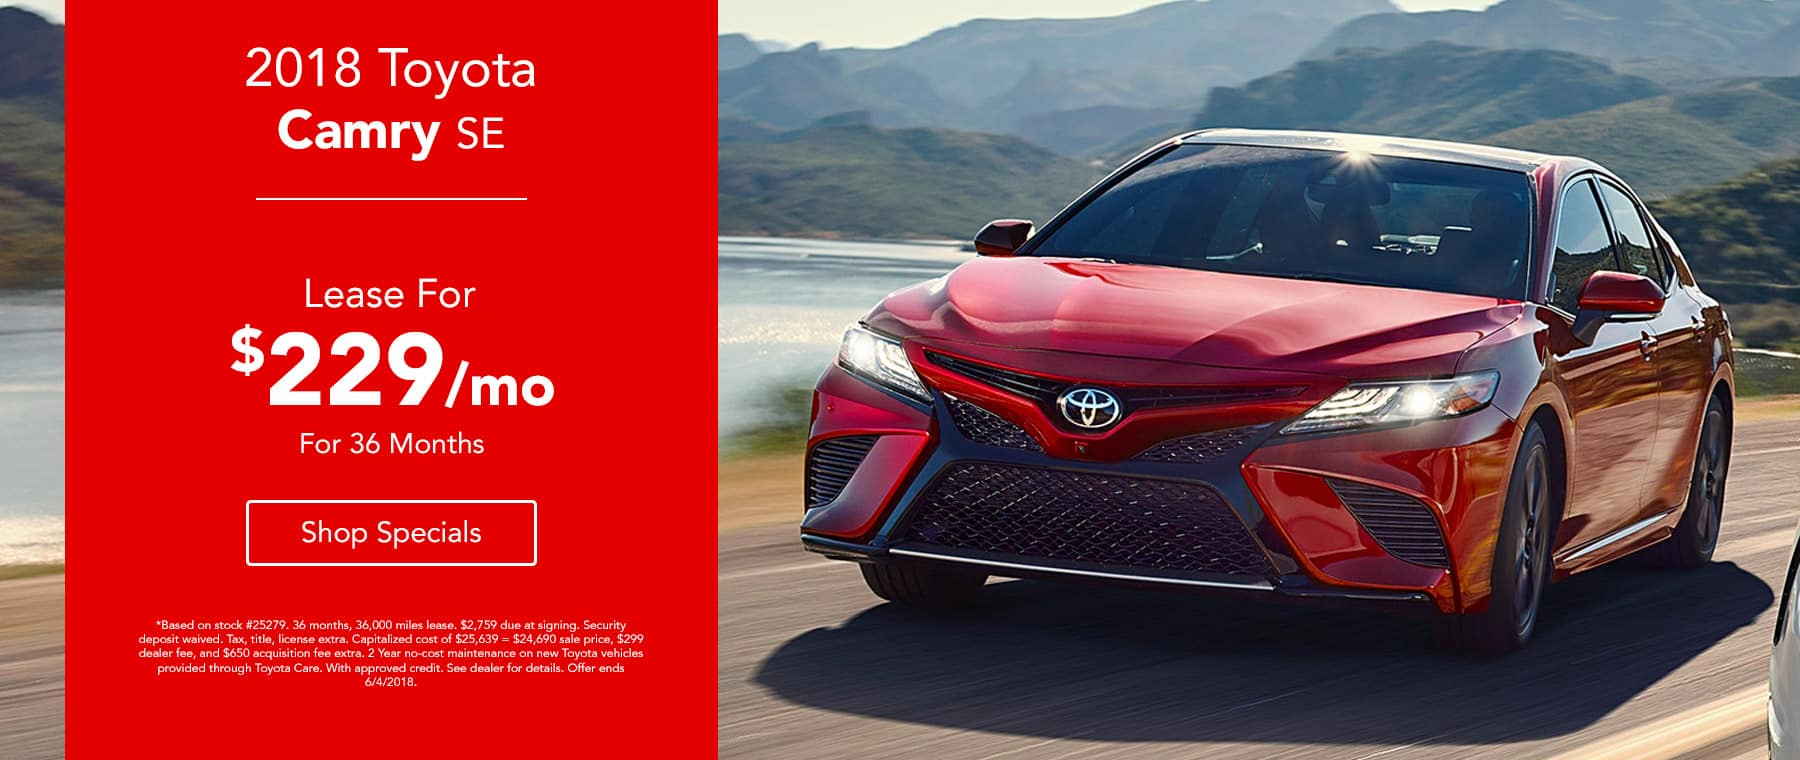 2018 Toyota Camry - Lease for $229/mo